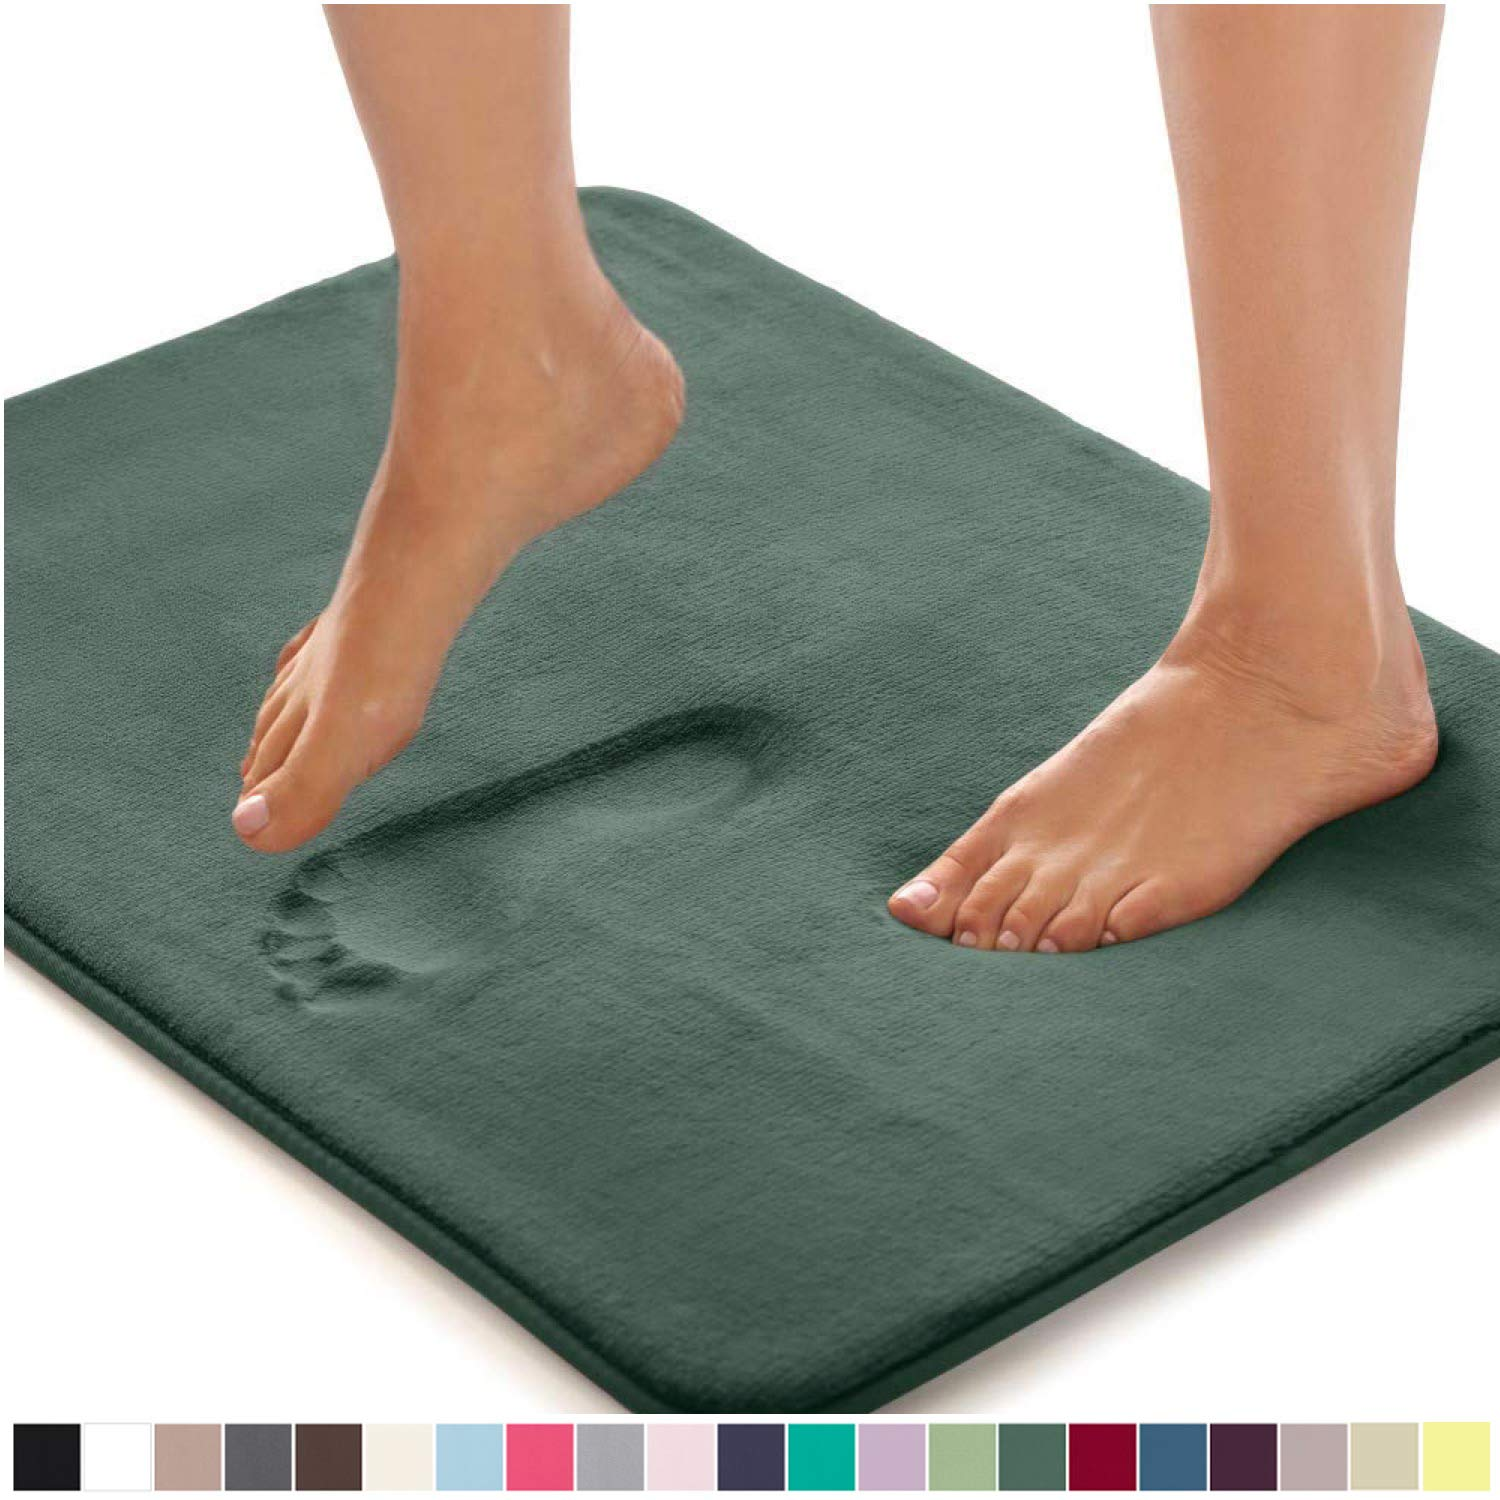 Gorilla Grip Original Thick Memory Foam Bath Rug, 60x24, Cushioned, Soft Floor Mats, Absorbent Premium Bathroom Mat Rugs, Machine Washable, Luxury Plush Comfortable Carpet for Bath Room, Hunter Green